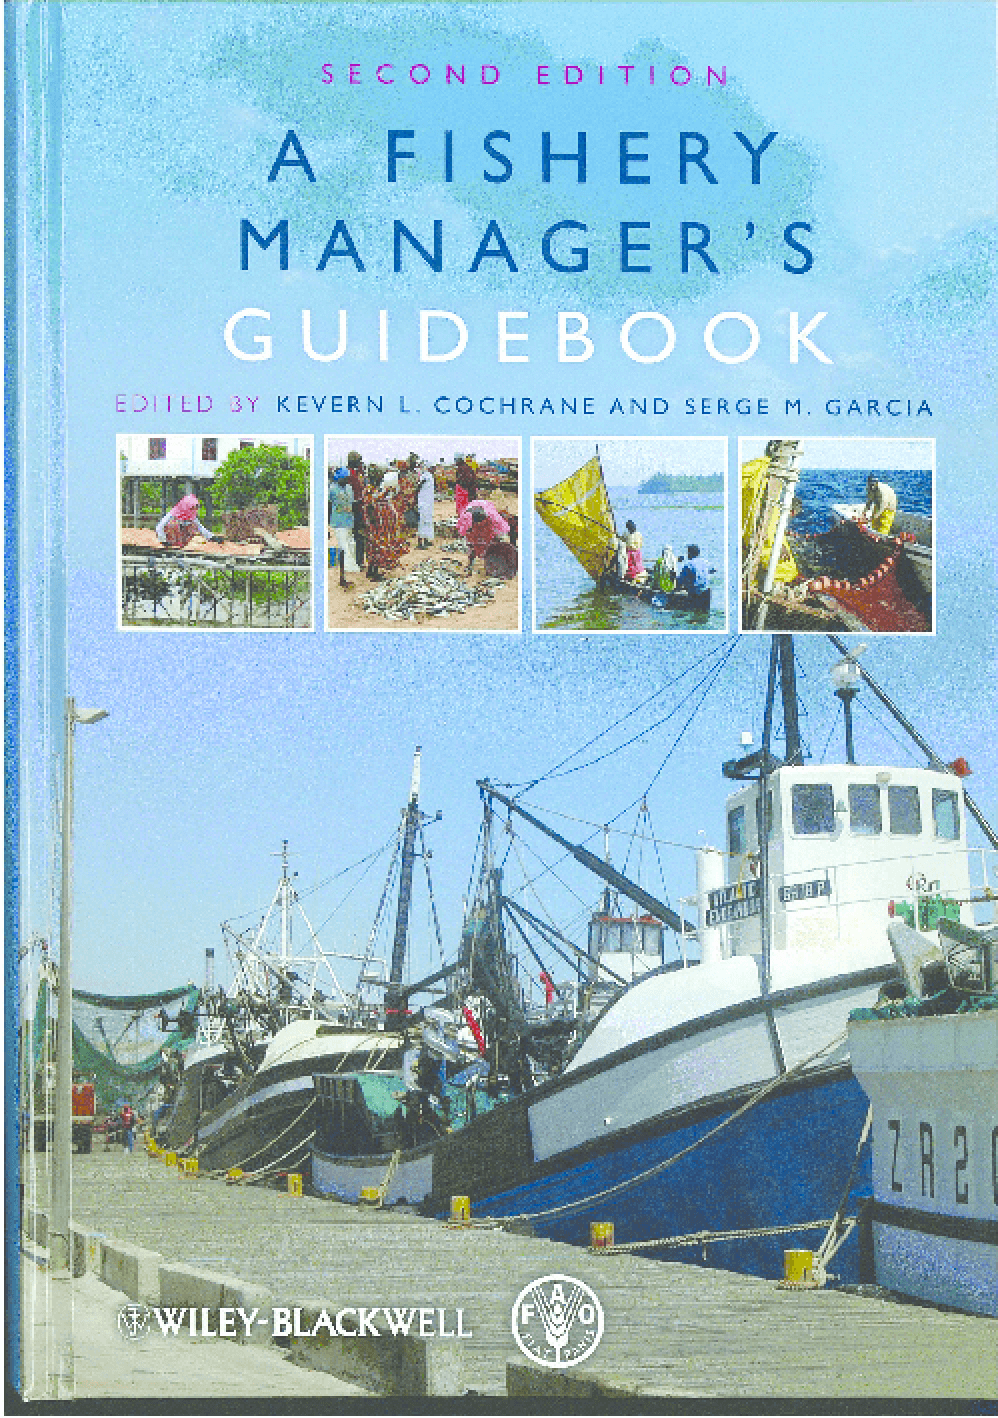 A Fishery Manager's Guidebook, Second Edition